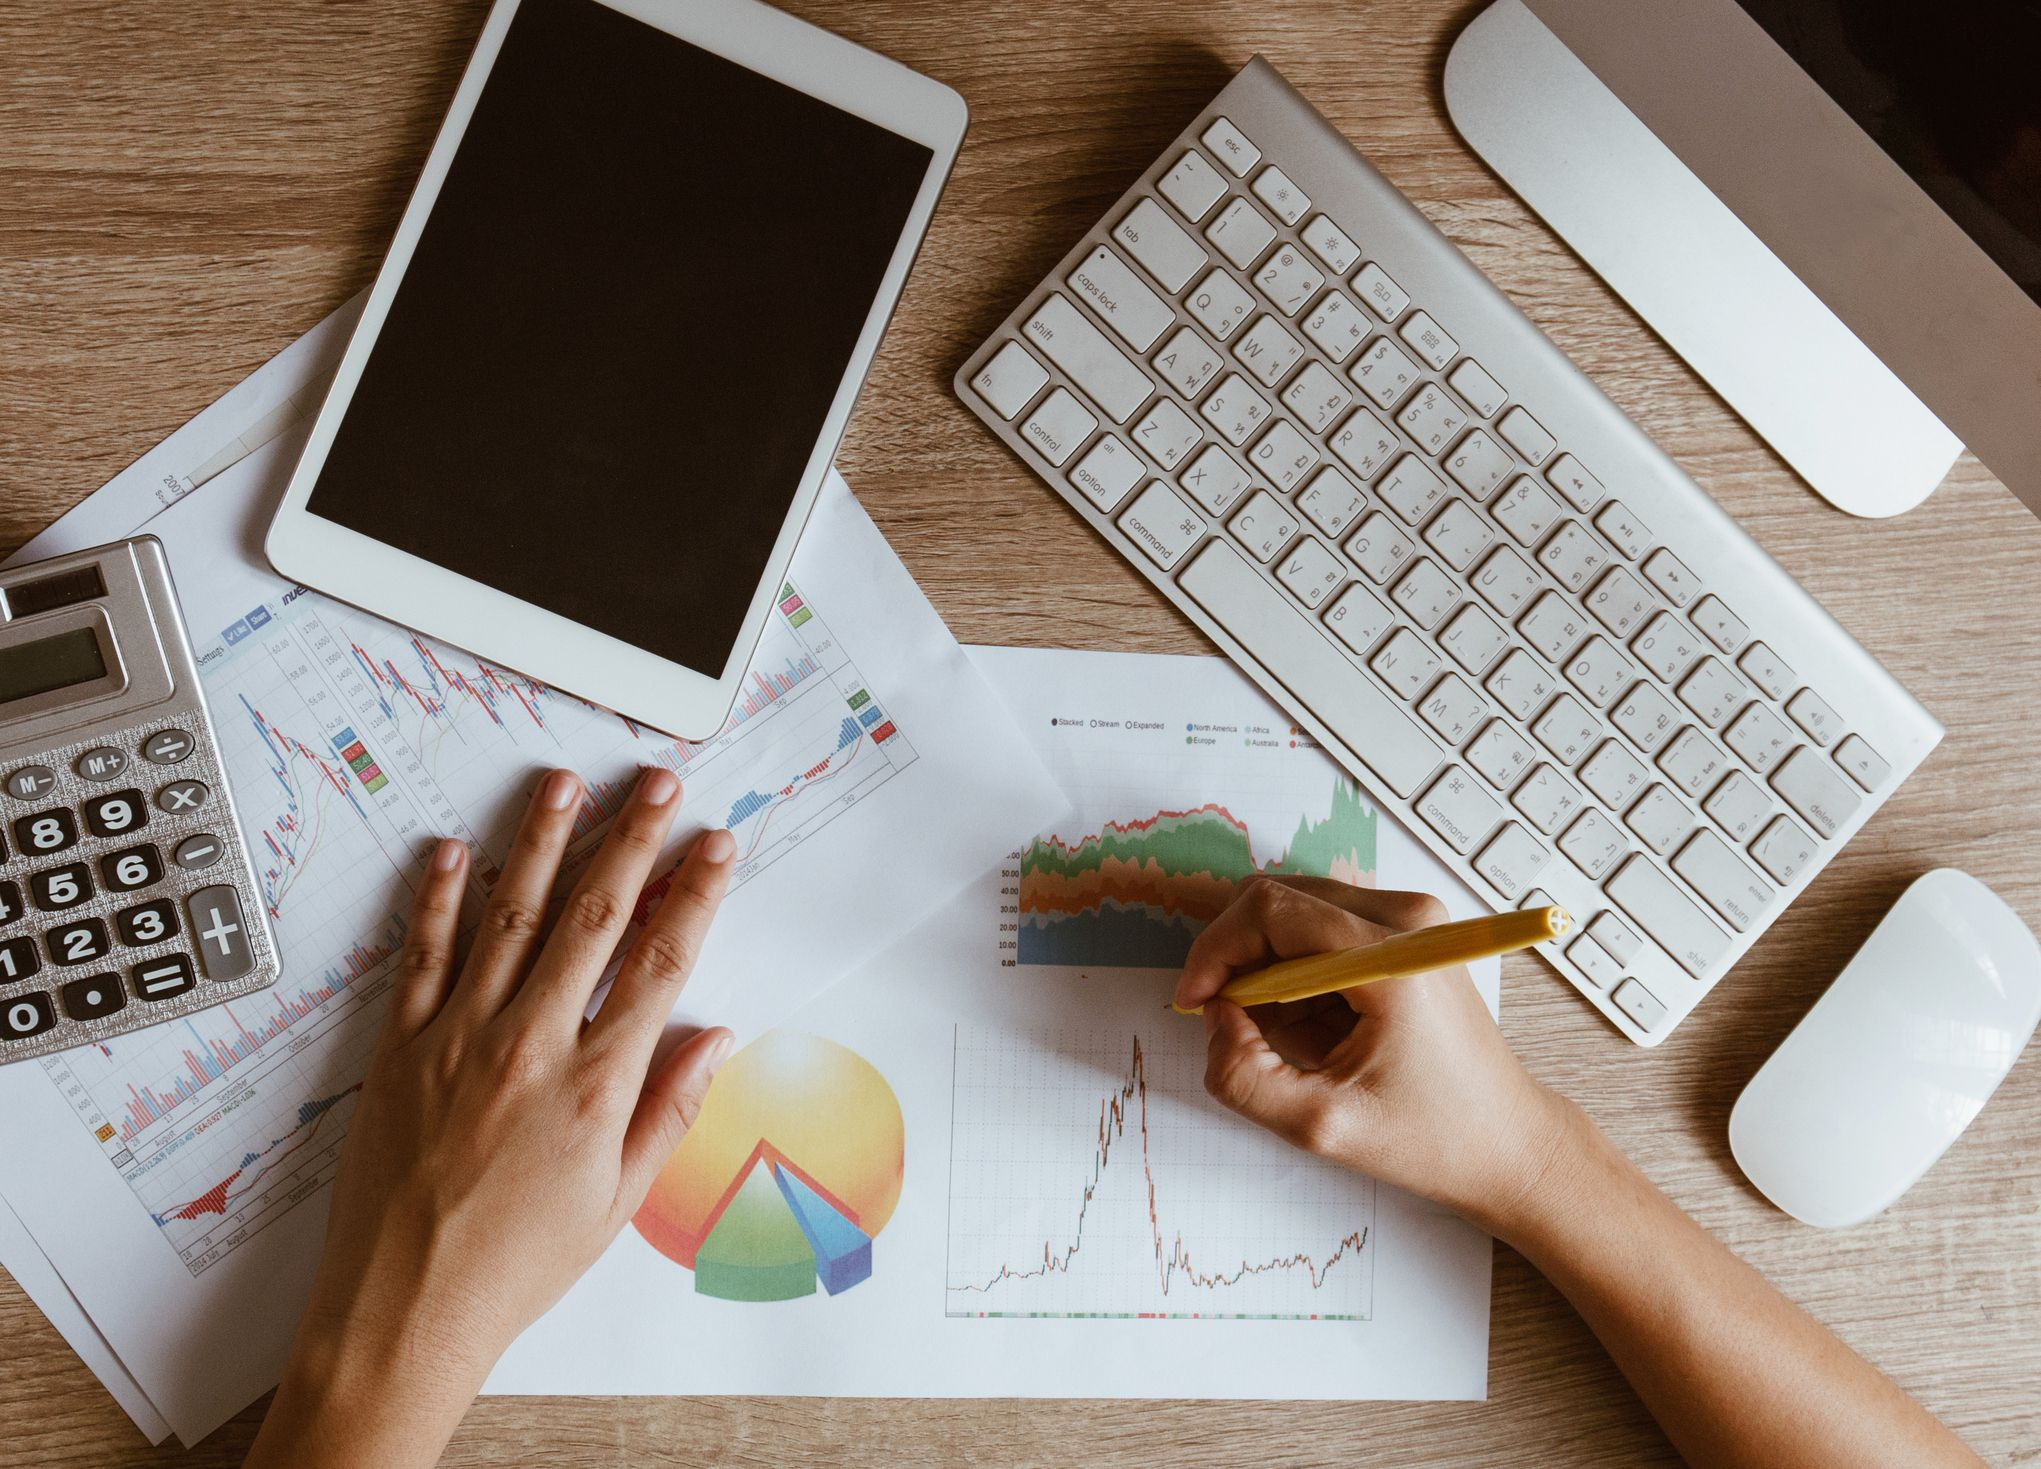 calculating current ratio from balance sheet